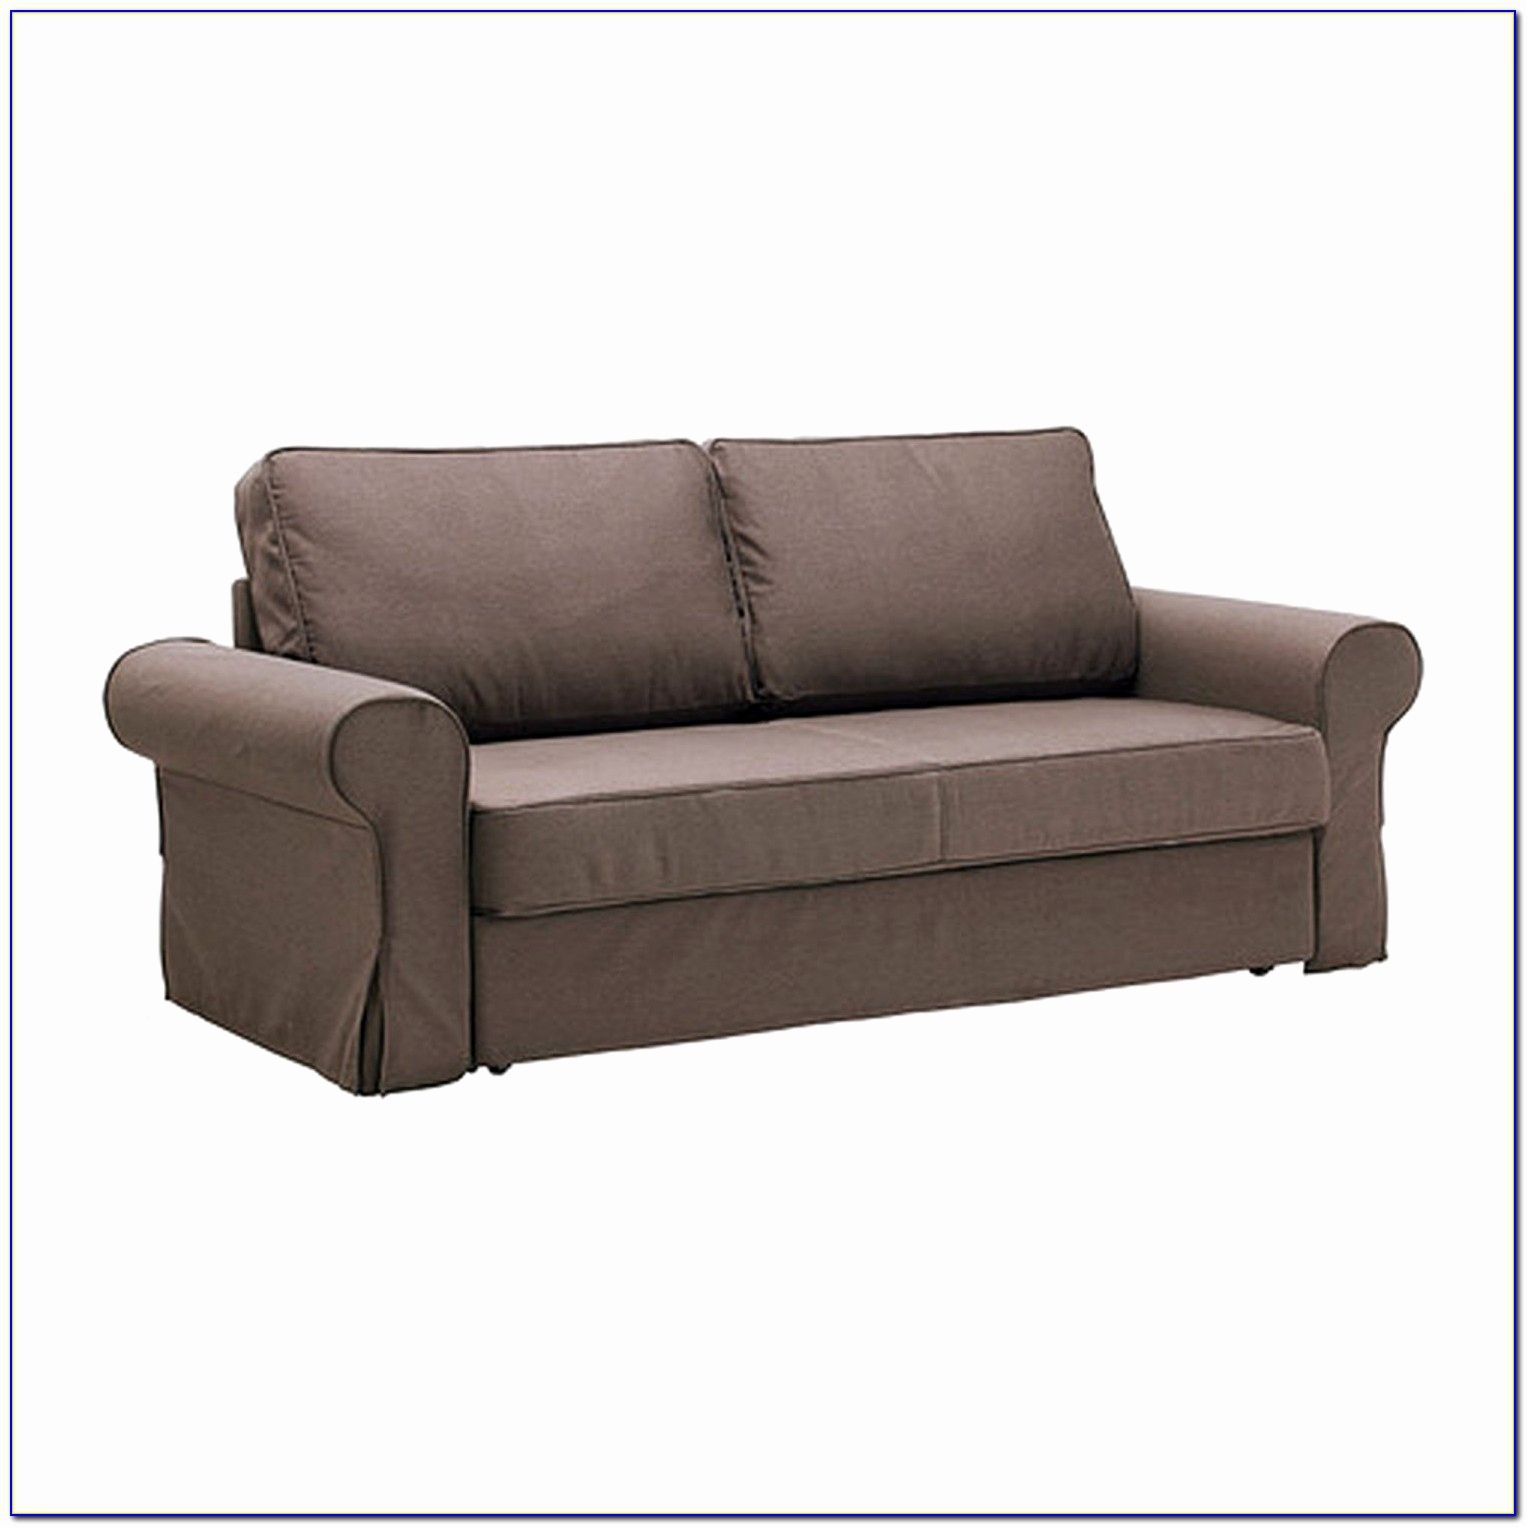 ikea bed chair covers stand test 10 times futon slipcover